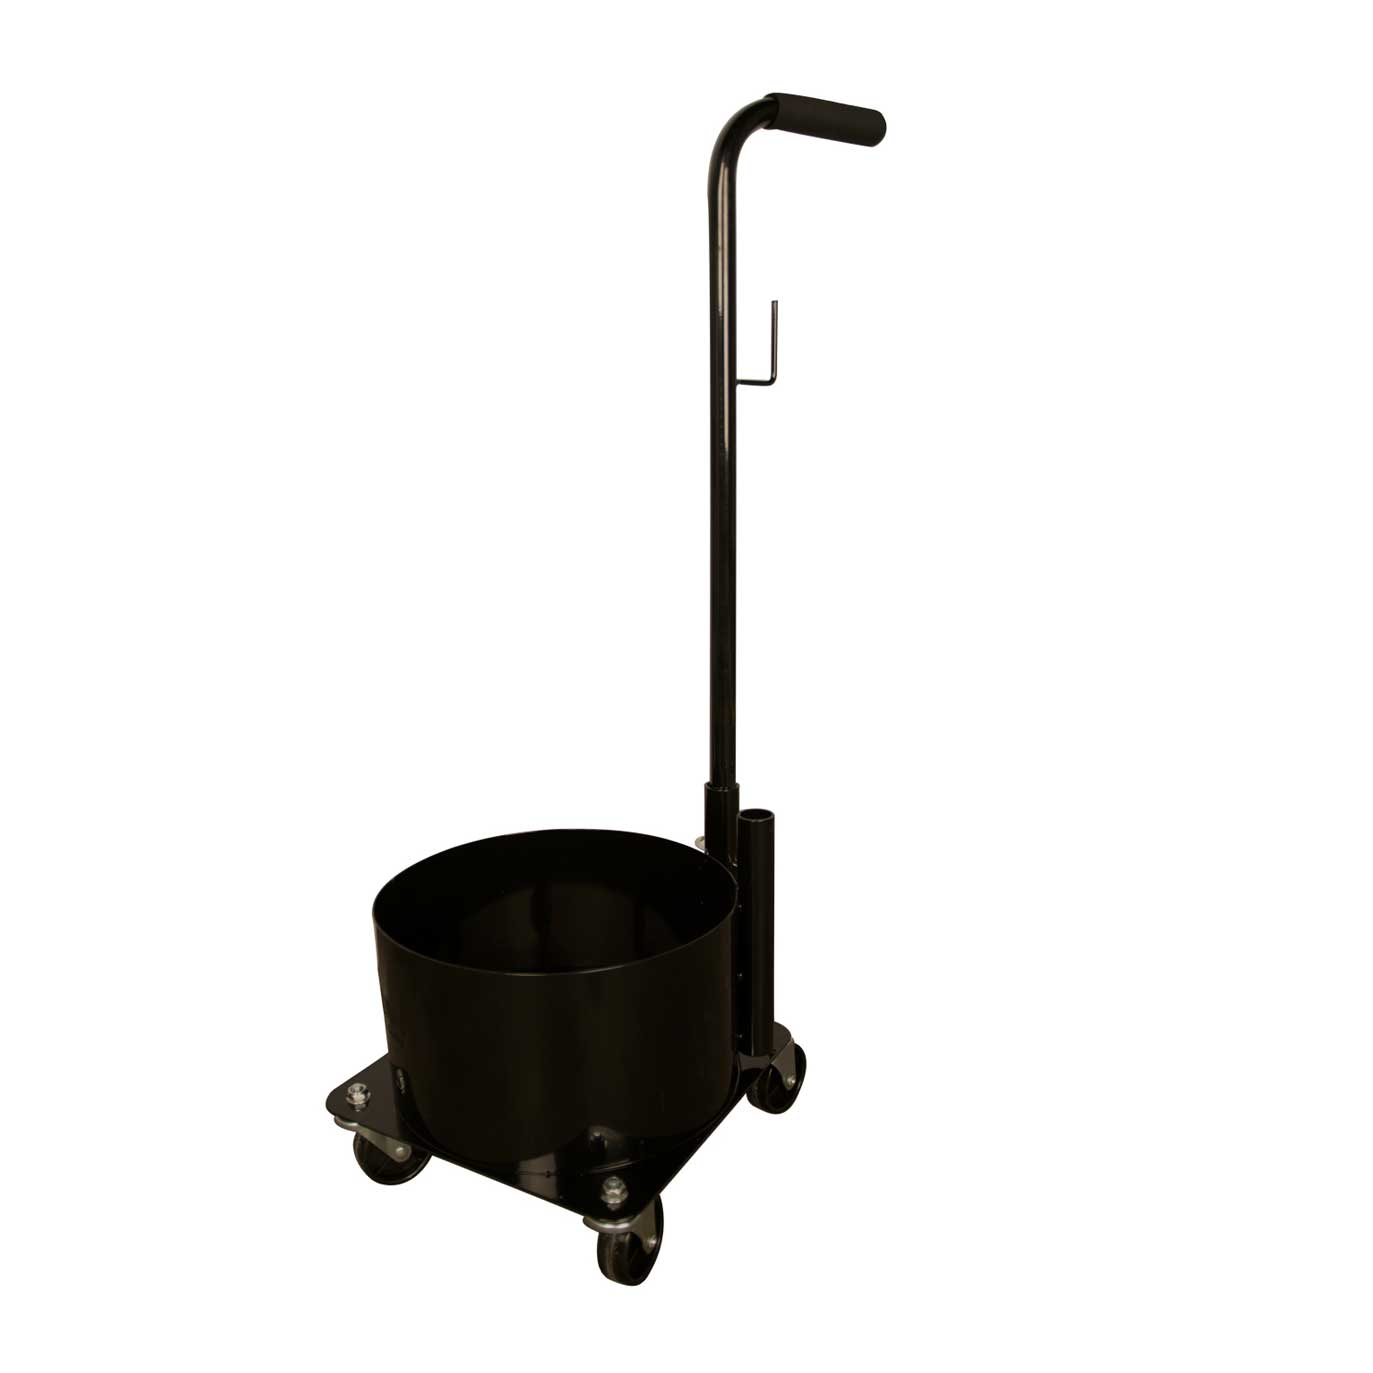 Image of Tensor – M510 Canister Trolley